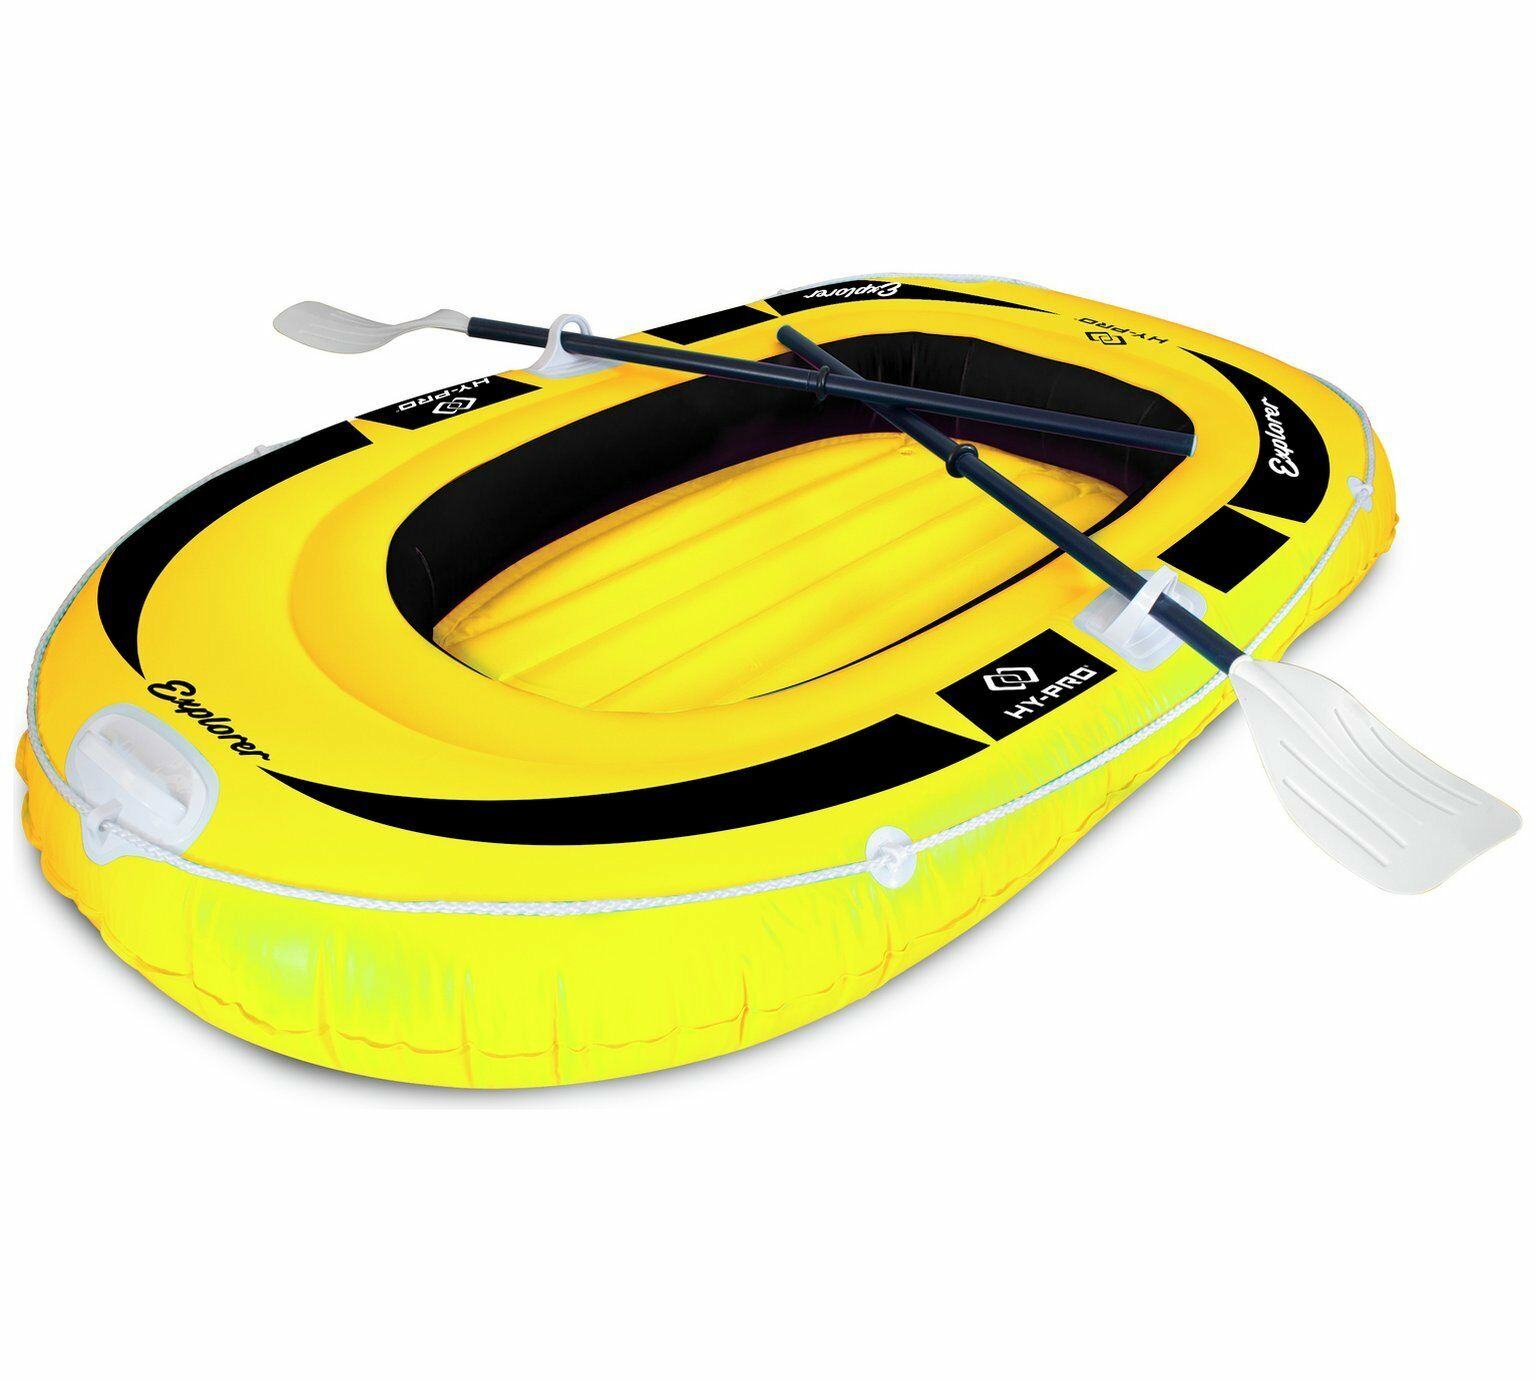 HY-PRO 2 PERSON INFLATABLE YELLOW EXPLORER DINGHY – INCLUDES OARS, PUMP, ETC MAN